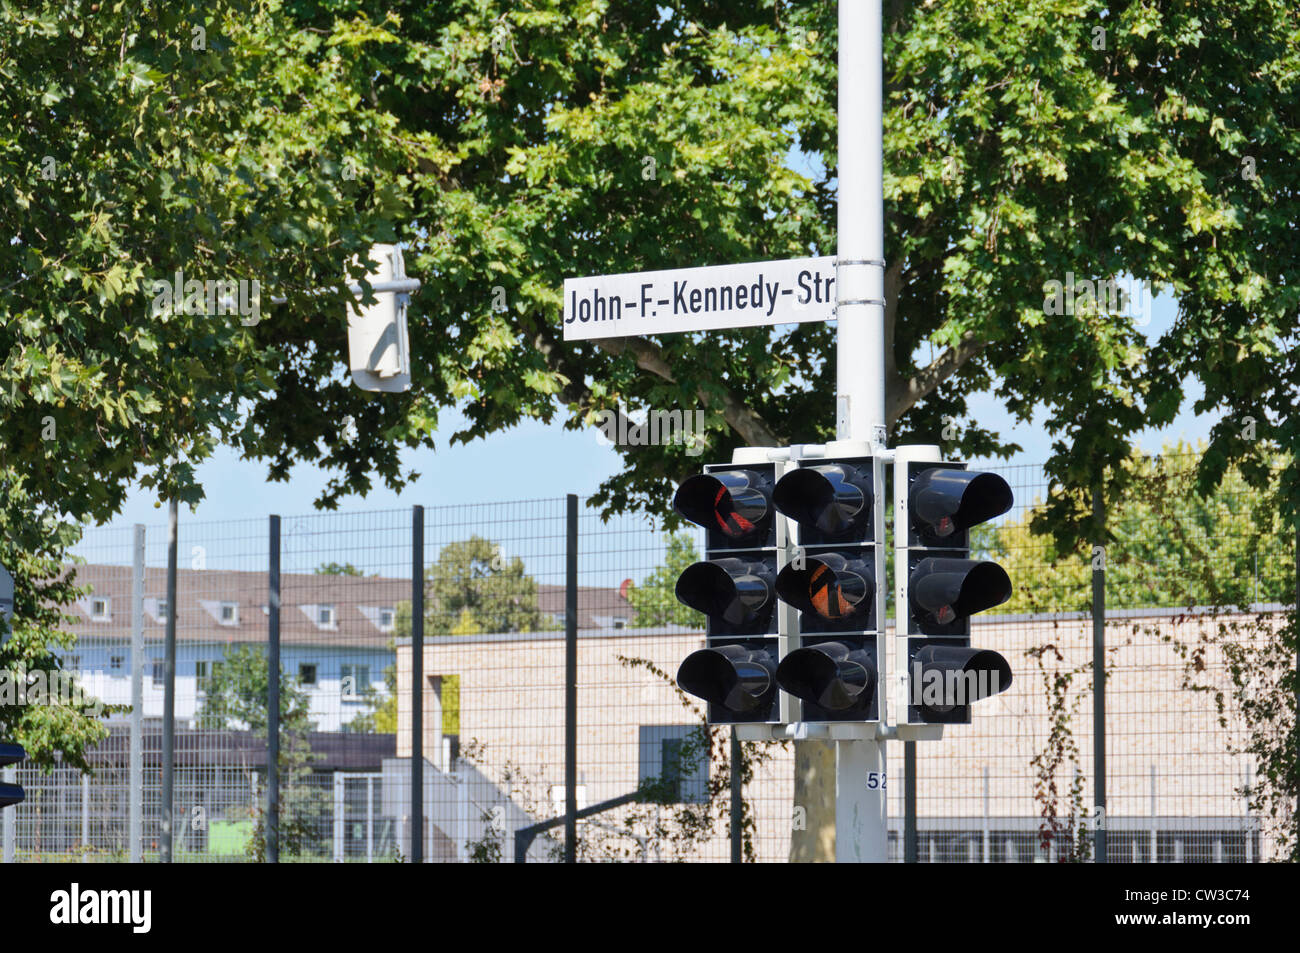 John F Kennedy Str Street Sign 2 Traffic Lights Red And Yellow